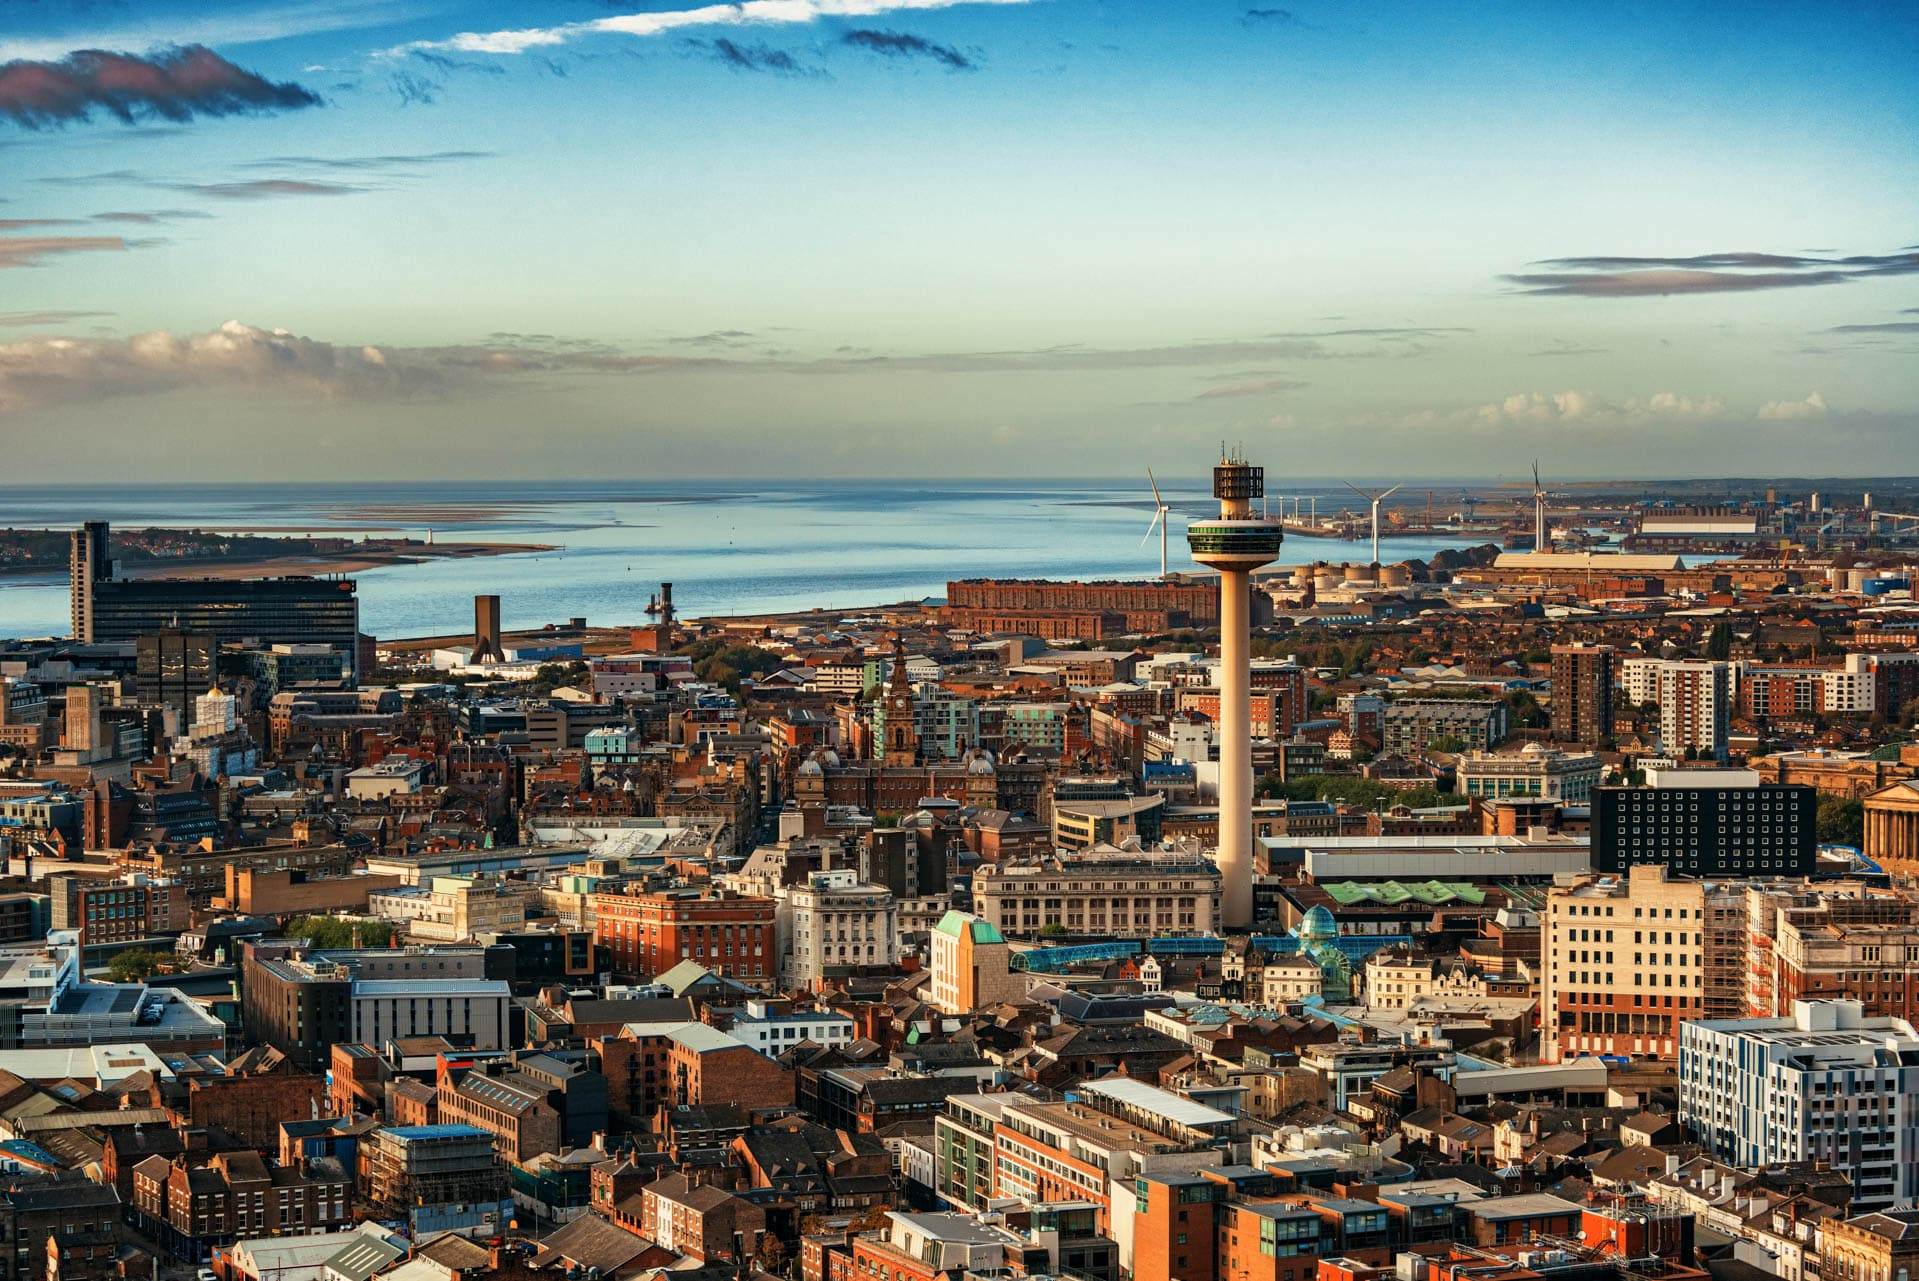 Liverpool-skyline-rooftop-view-with-buildings-in-England-in-United-Kingdom